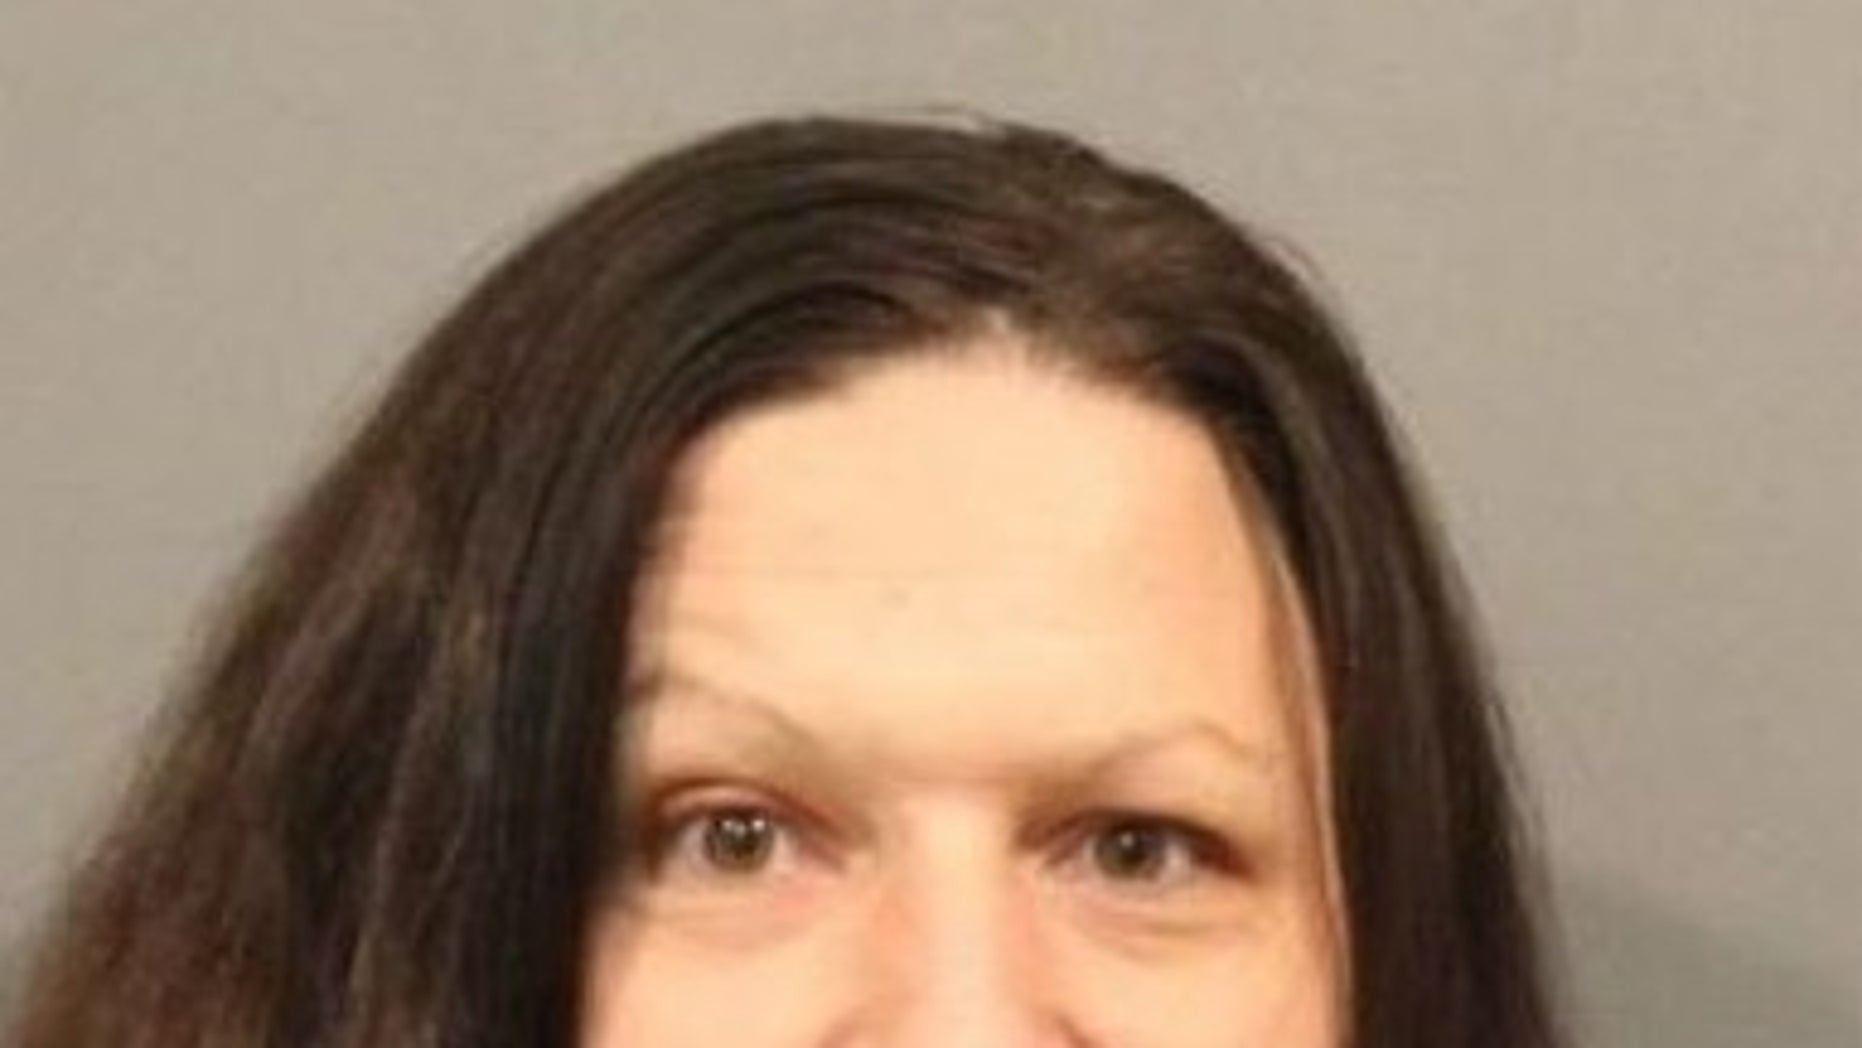 Kelly Cochran was sentenced to 65 years in prison for injecting her husband with a lethal dose of heroin and choking him.